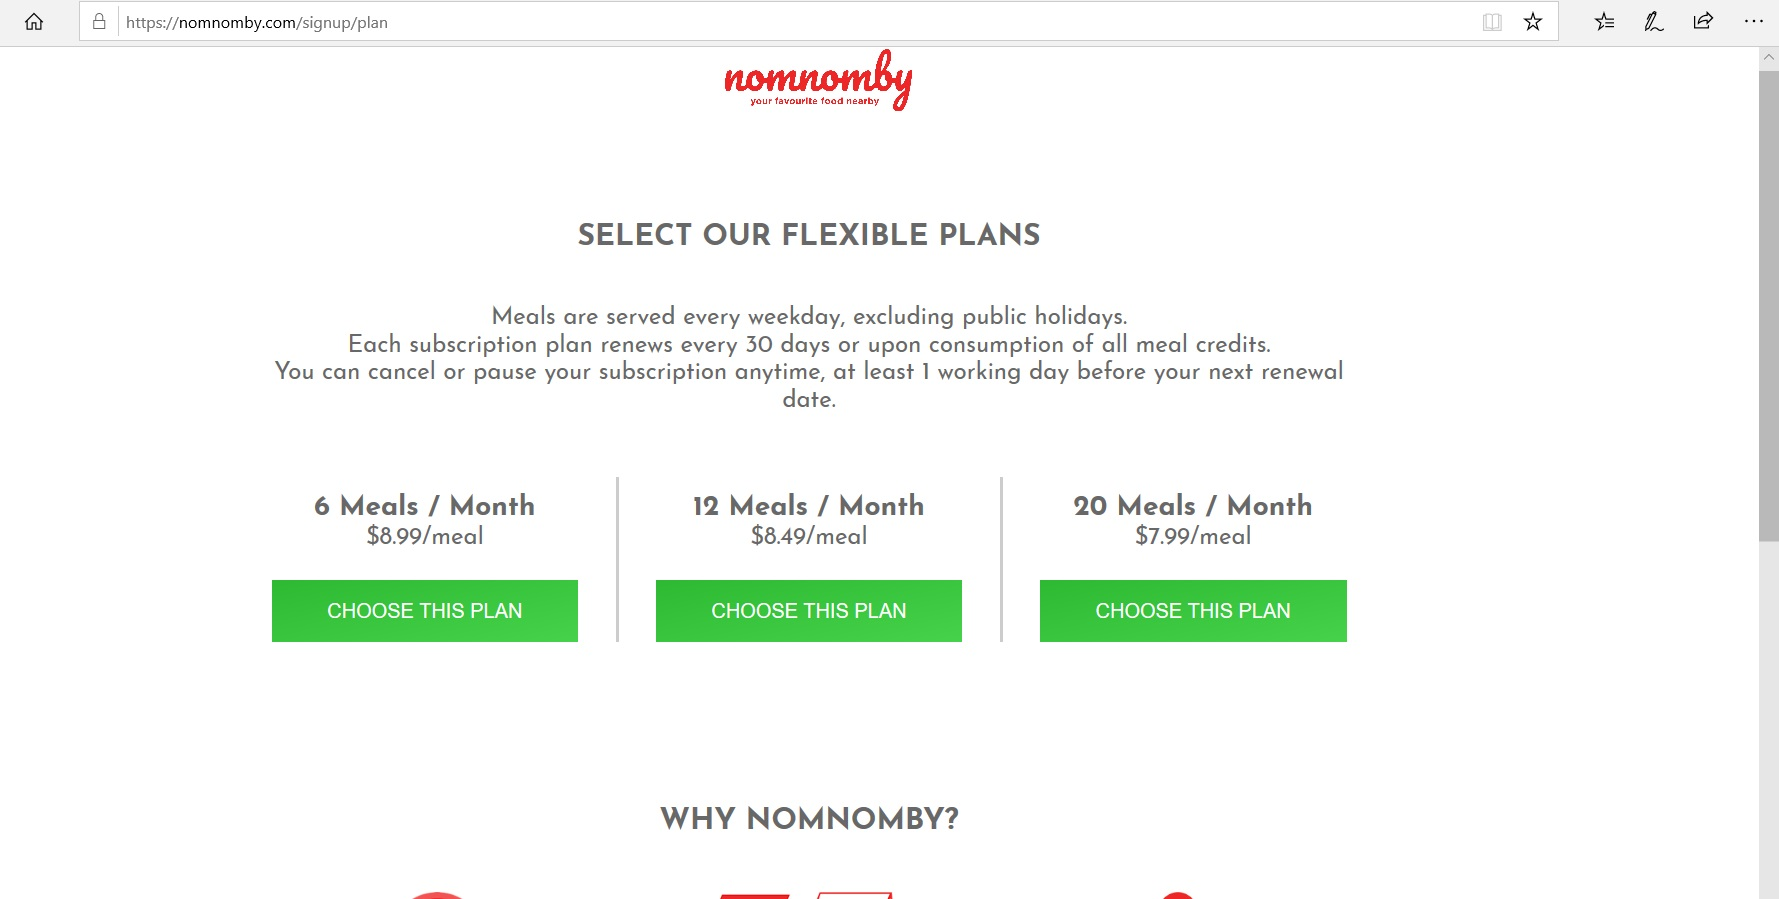 Nomnomby catalogue of meal plans.